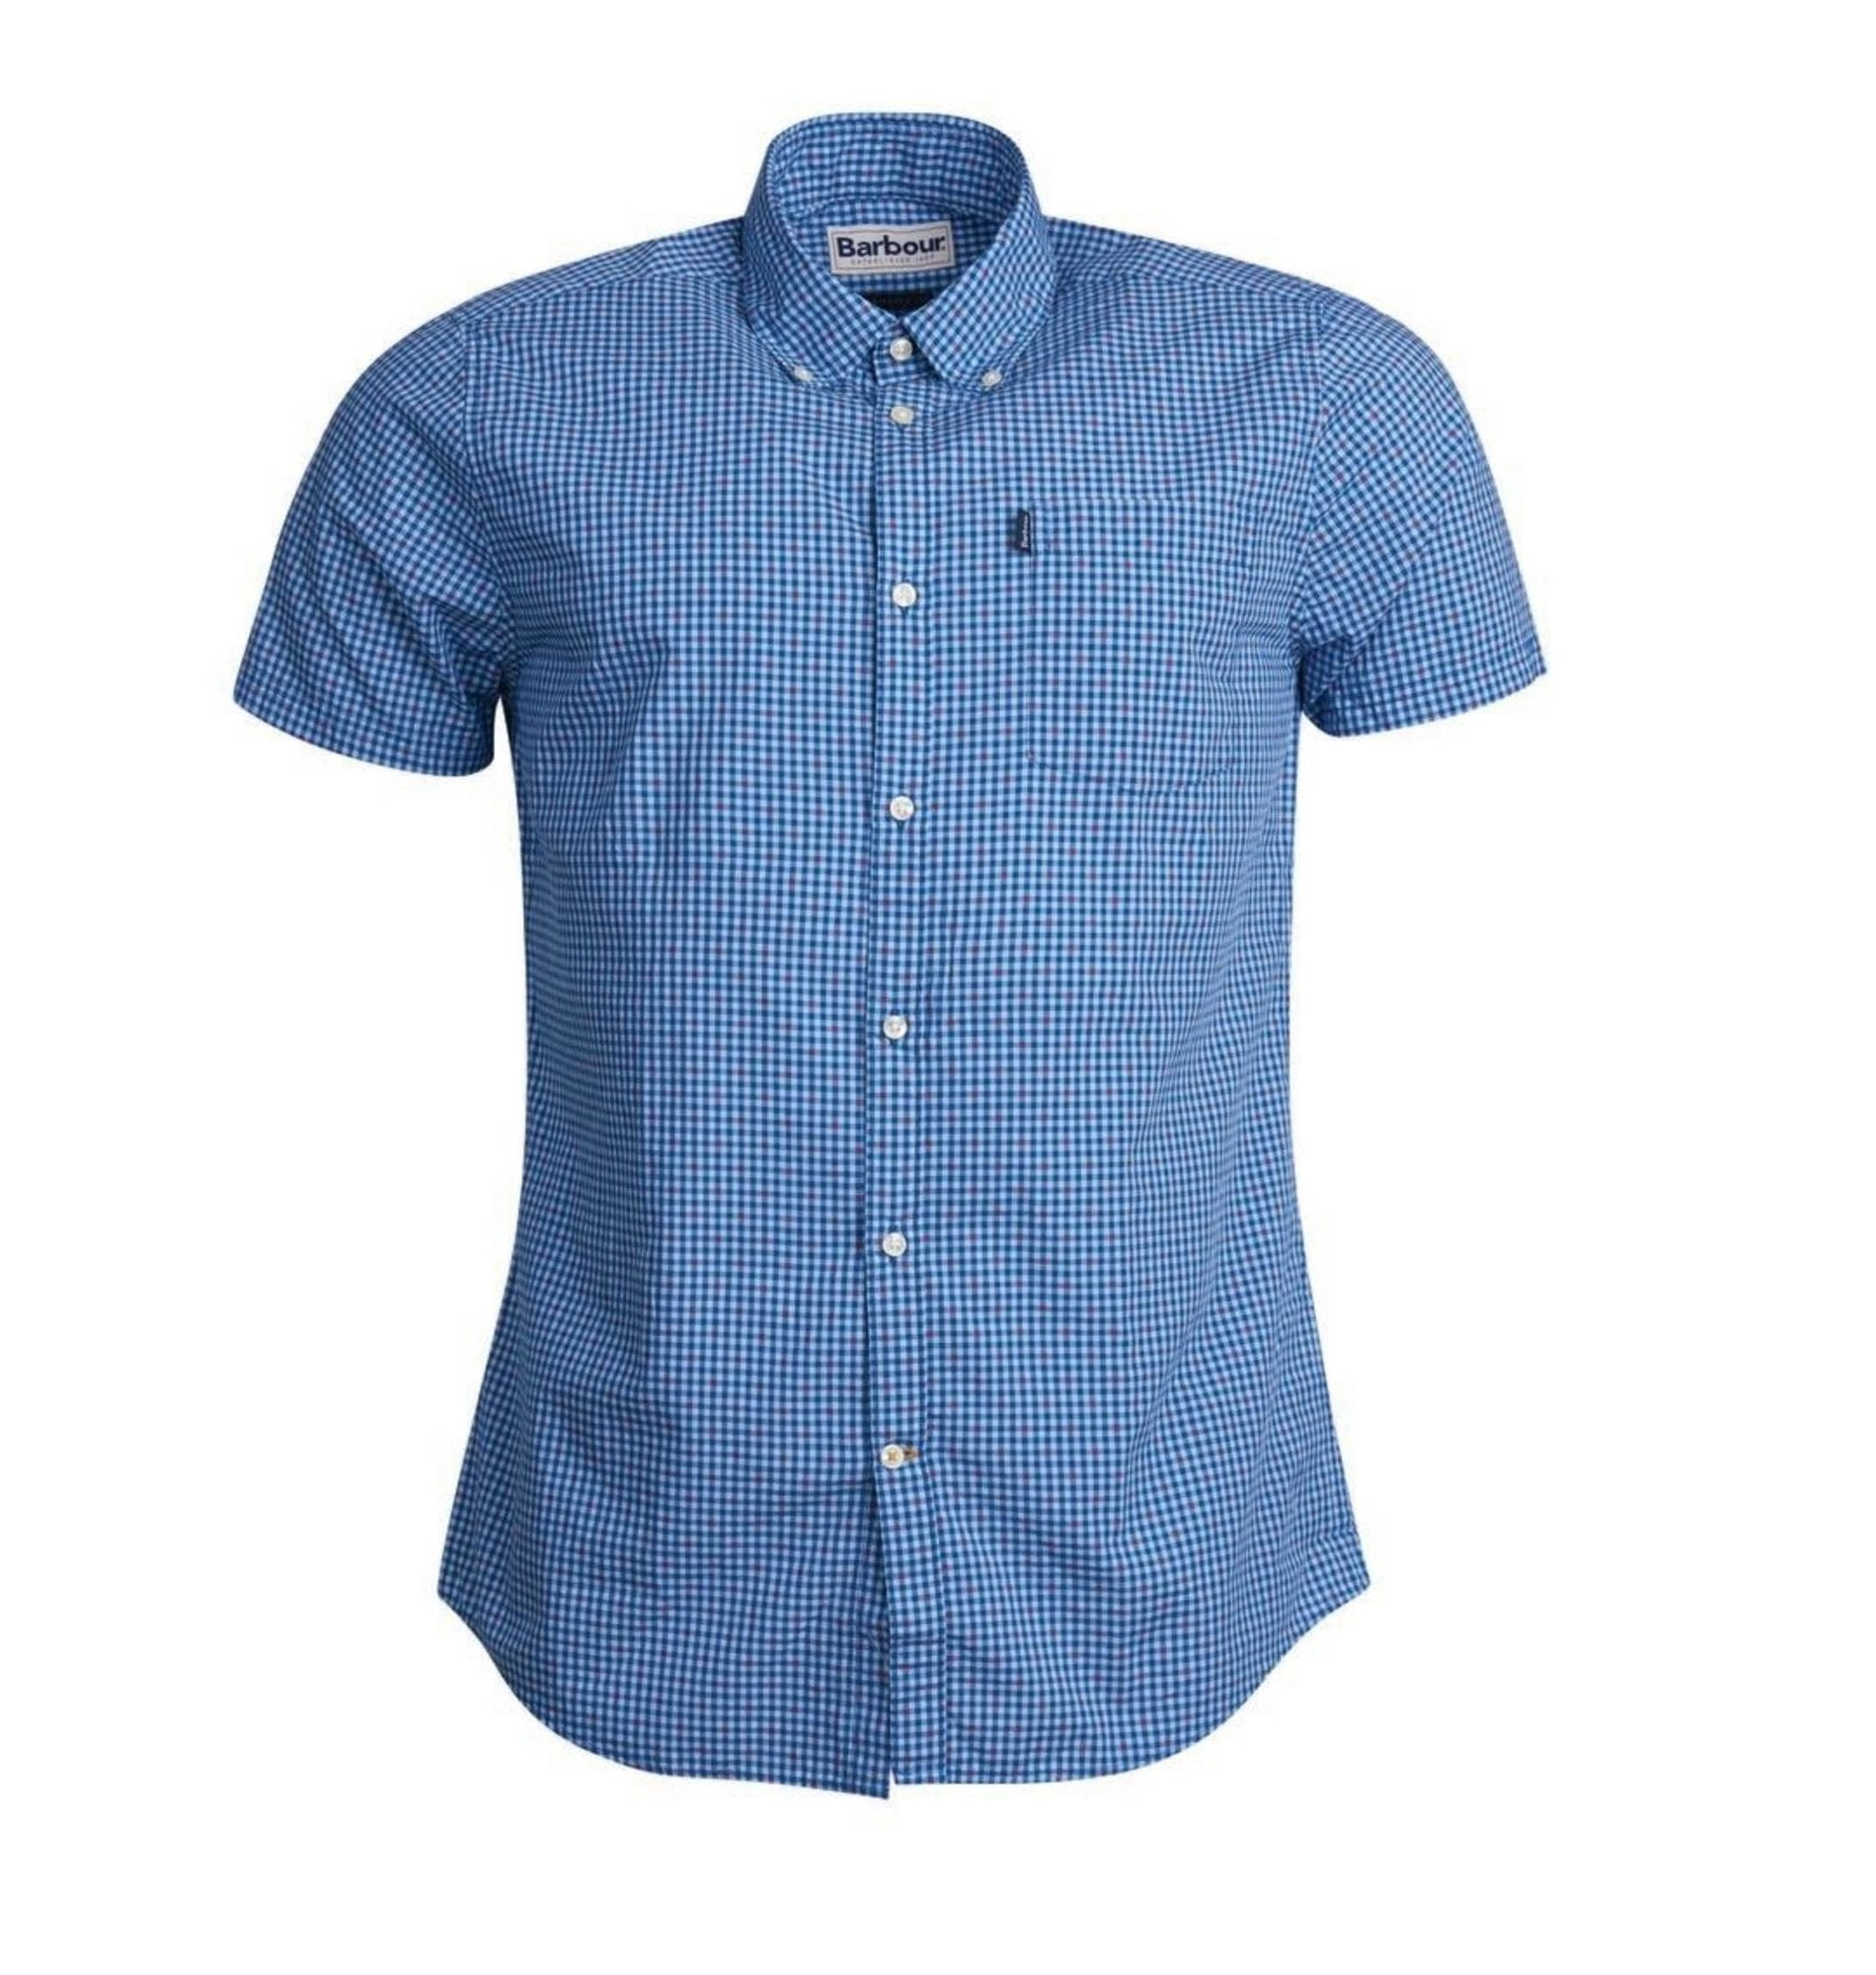 Barbour, Hector Short Sleeve Tailored Shirt, Mid Blue